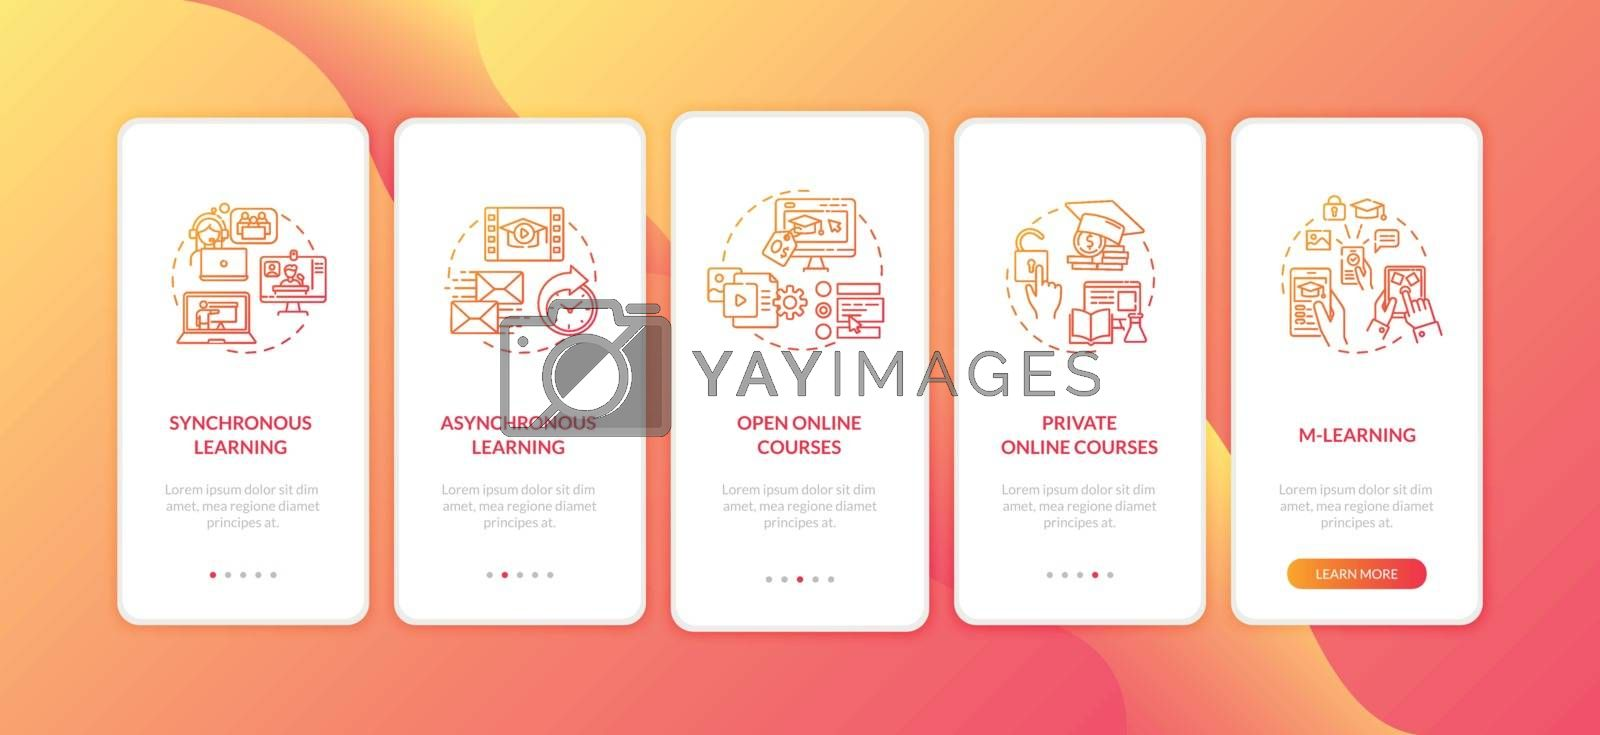 Distance learning types onboarding mobile app page screen with concepts. M learning. Online education walkthrough 5 steps graphic instructions. UI vector template with RGB color illustrations